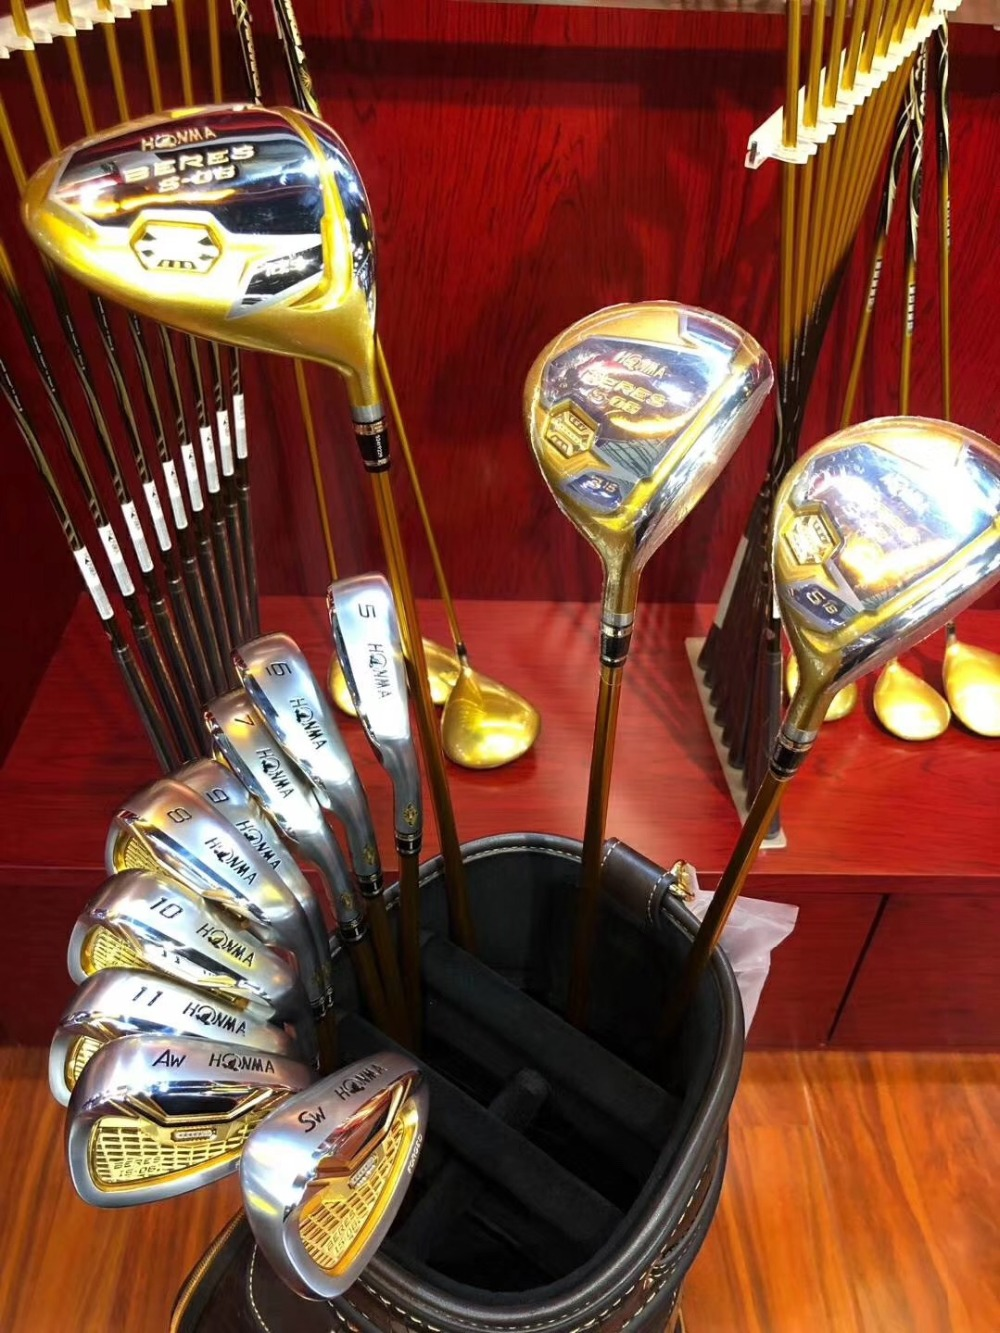 Golf Clubs Complete Set Honma Bere S-06 4 Star Golf Club Sets Driver+Fairway+Golf Iron+putter (14 Pieces) + Golf Bag